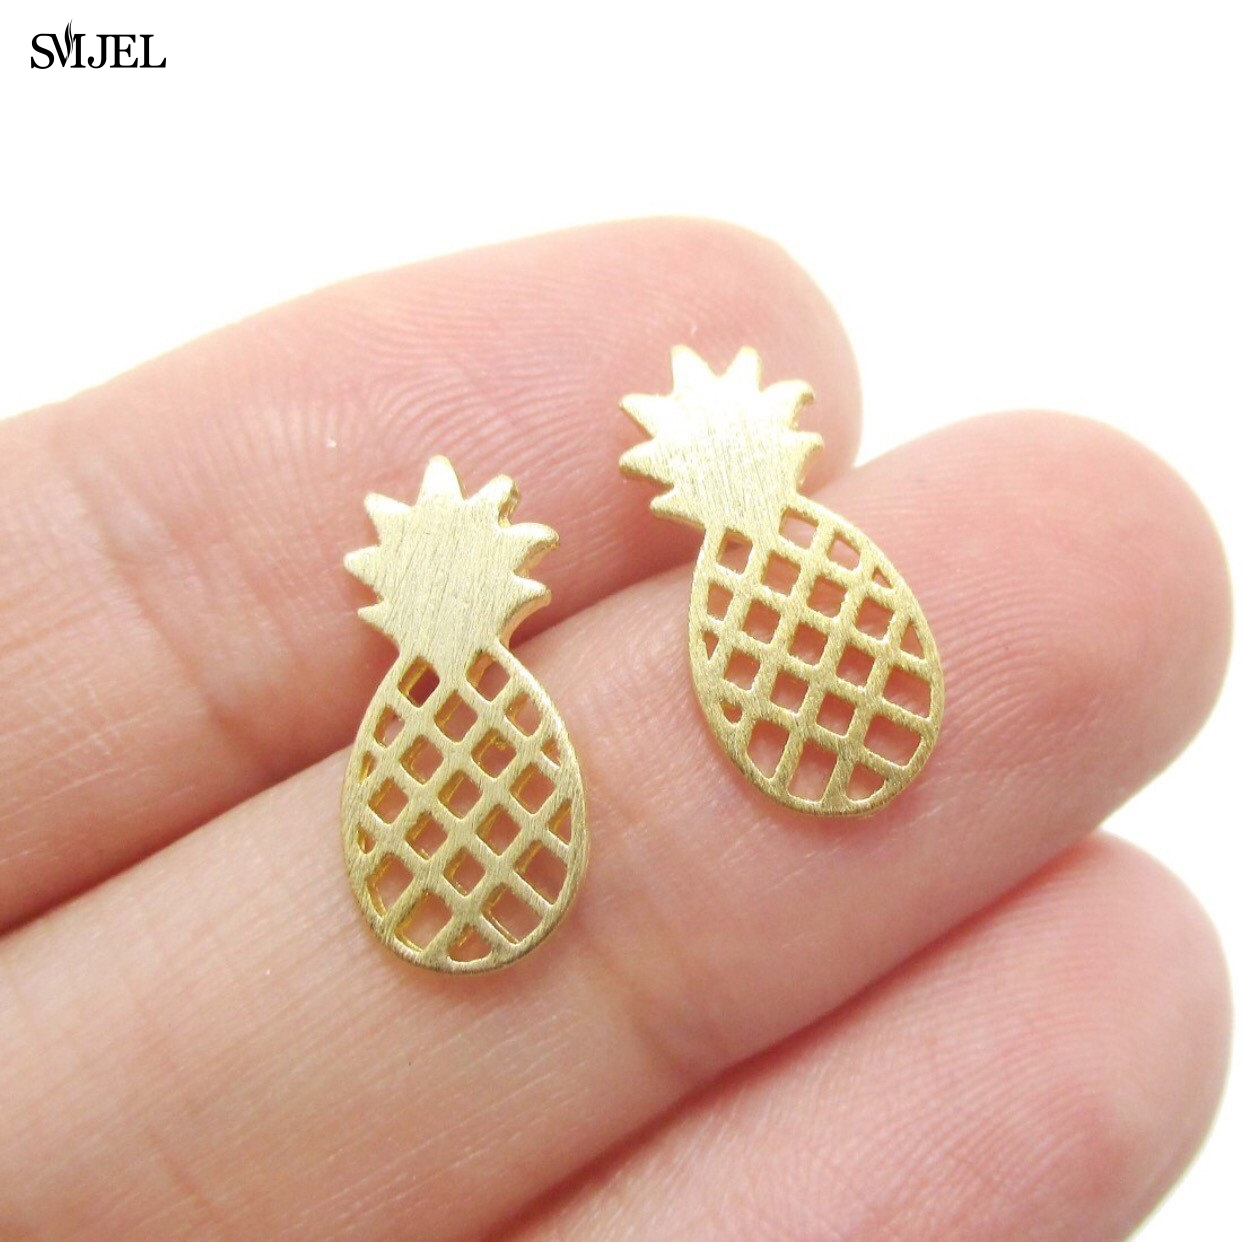 SMJEL 2017 Women Fruit Earrings Fashion Jewelry Pineapple Stud Earrings for Women Party Gifts